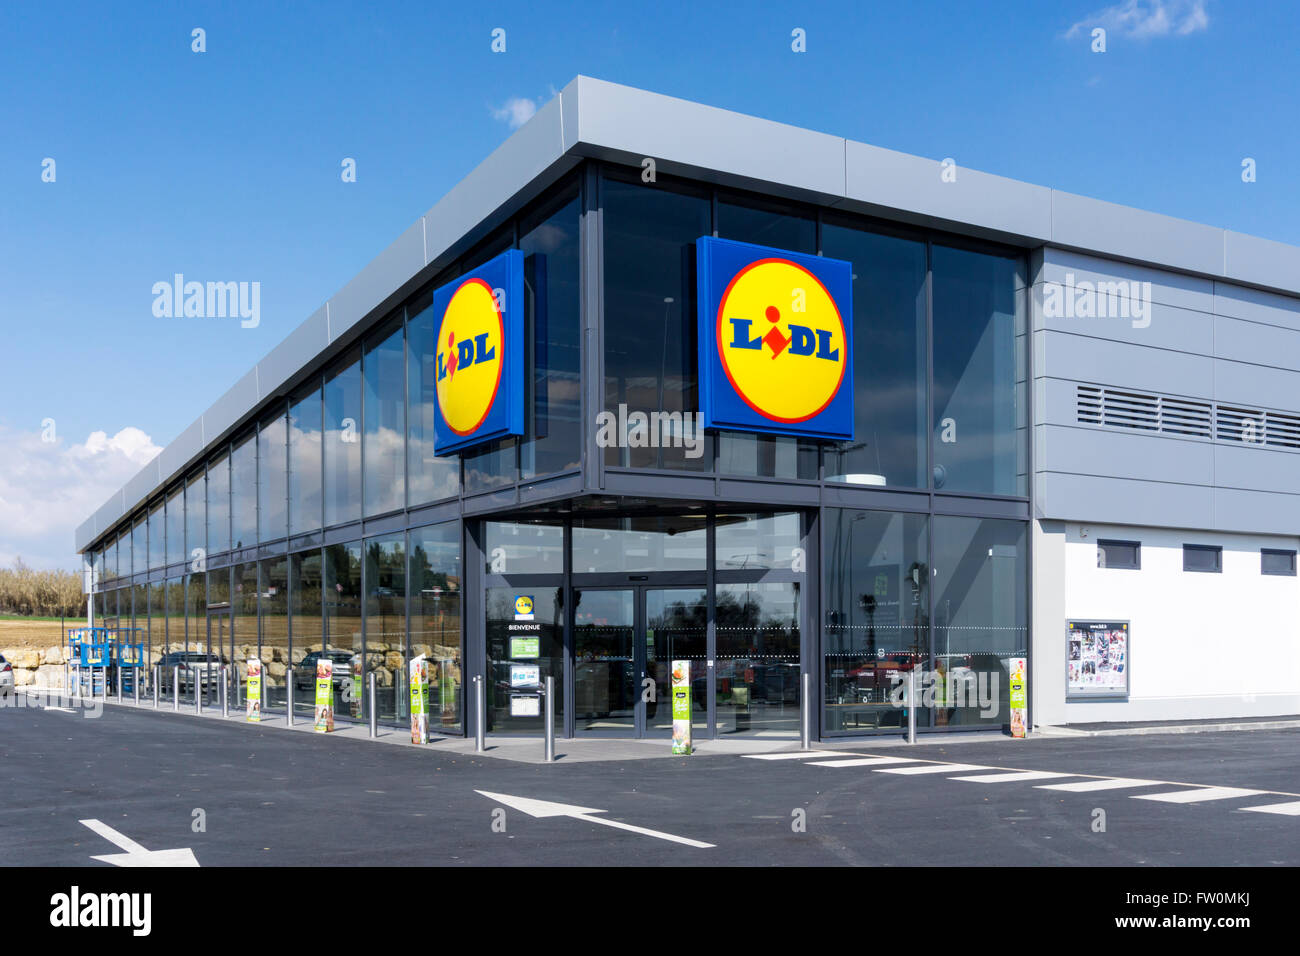 A Lidl supermarket in Beziers, France. - Stock Image